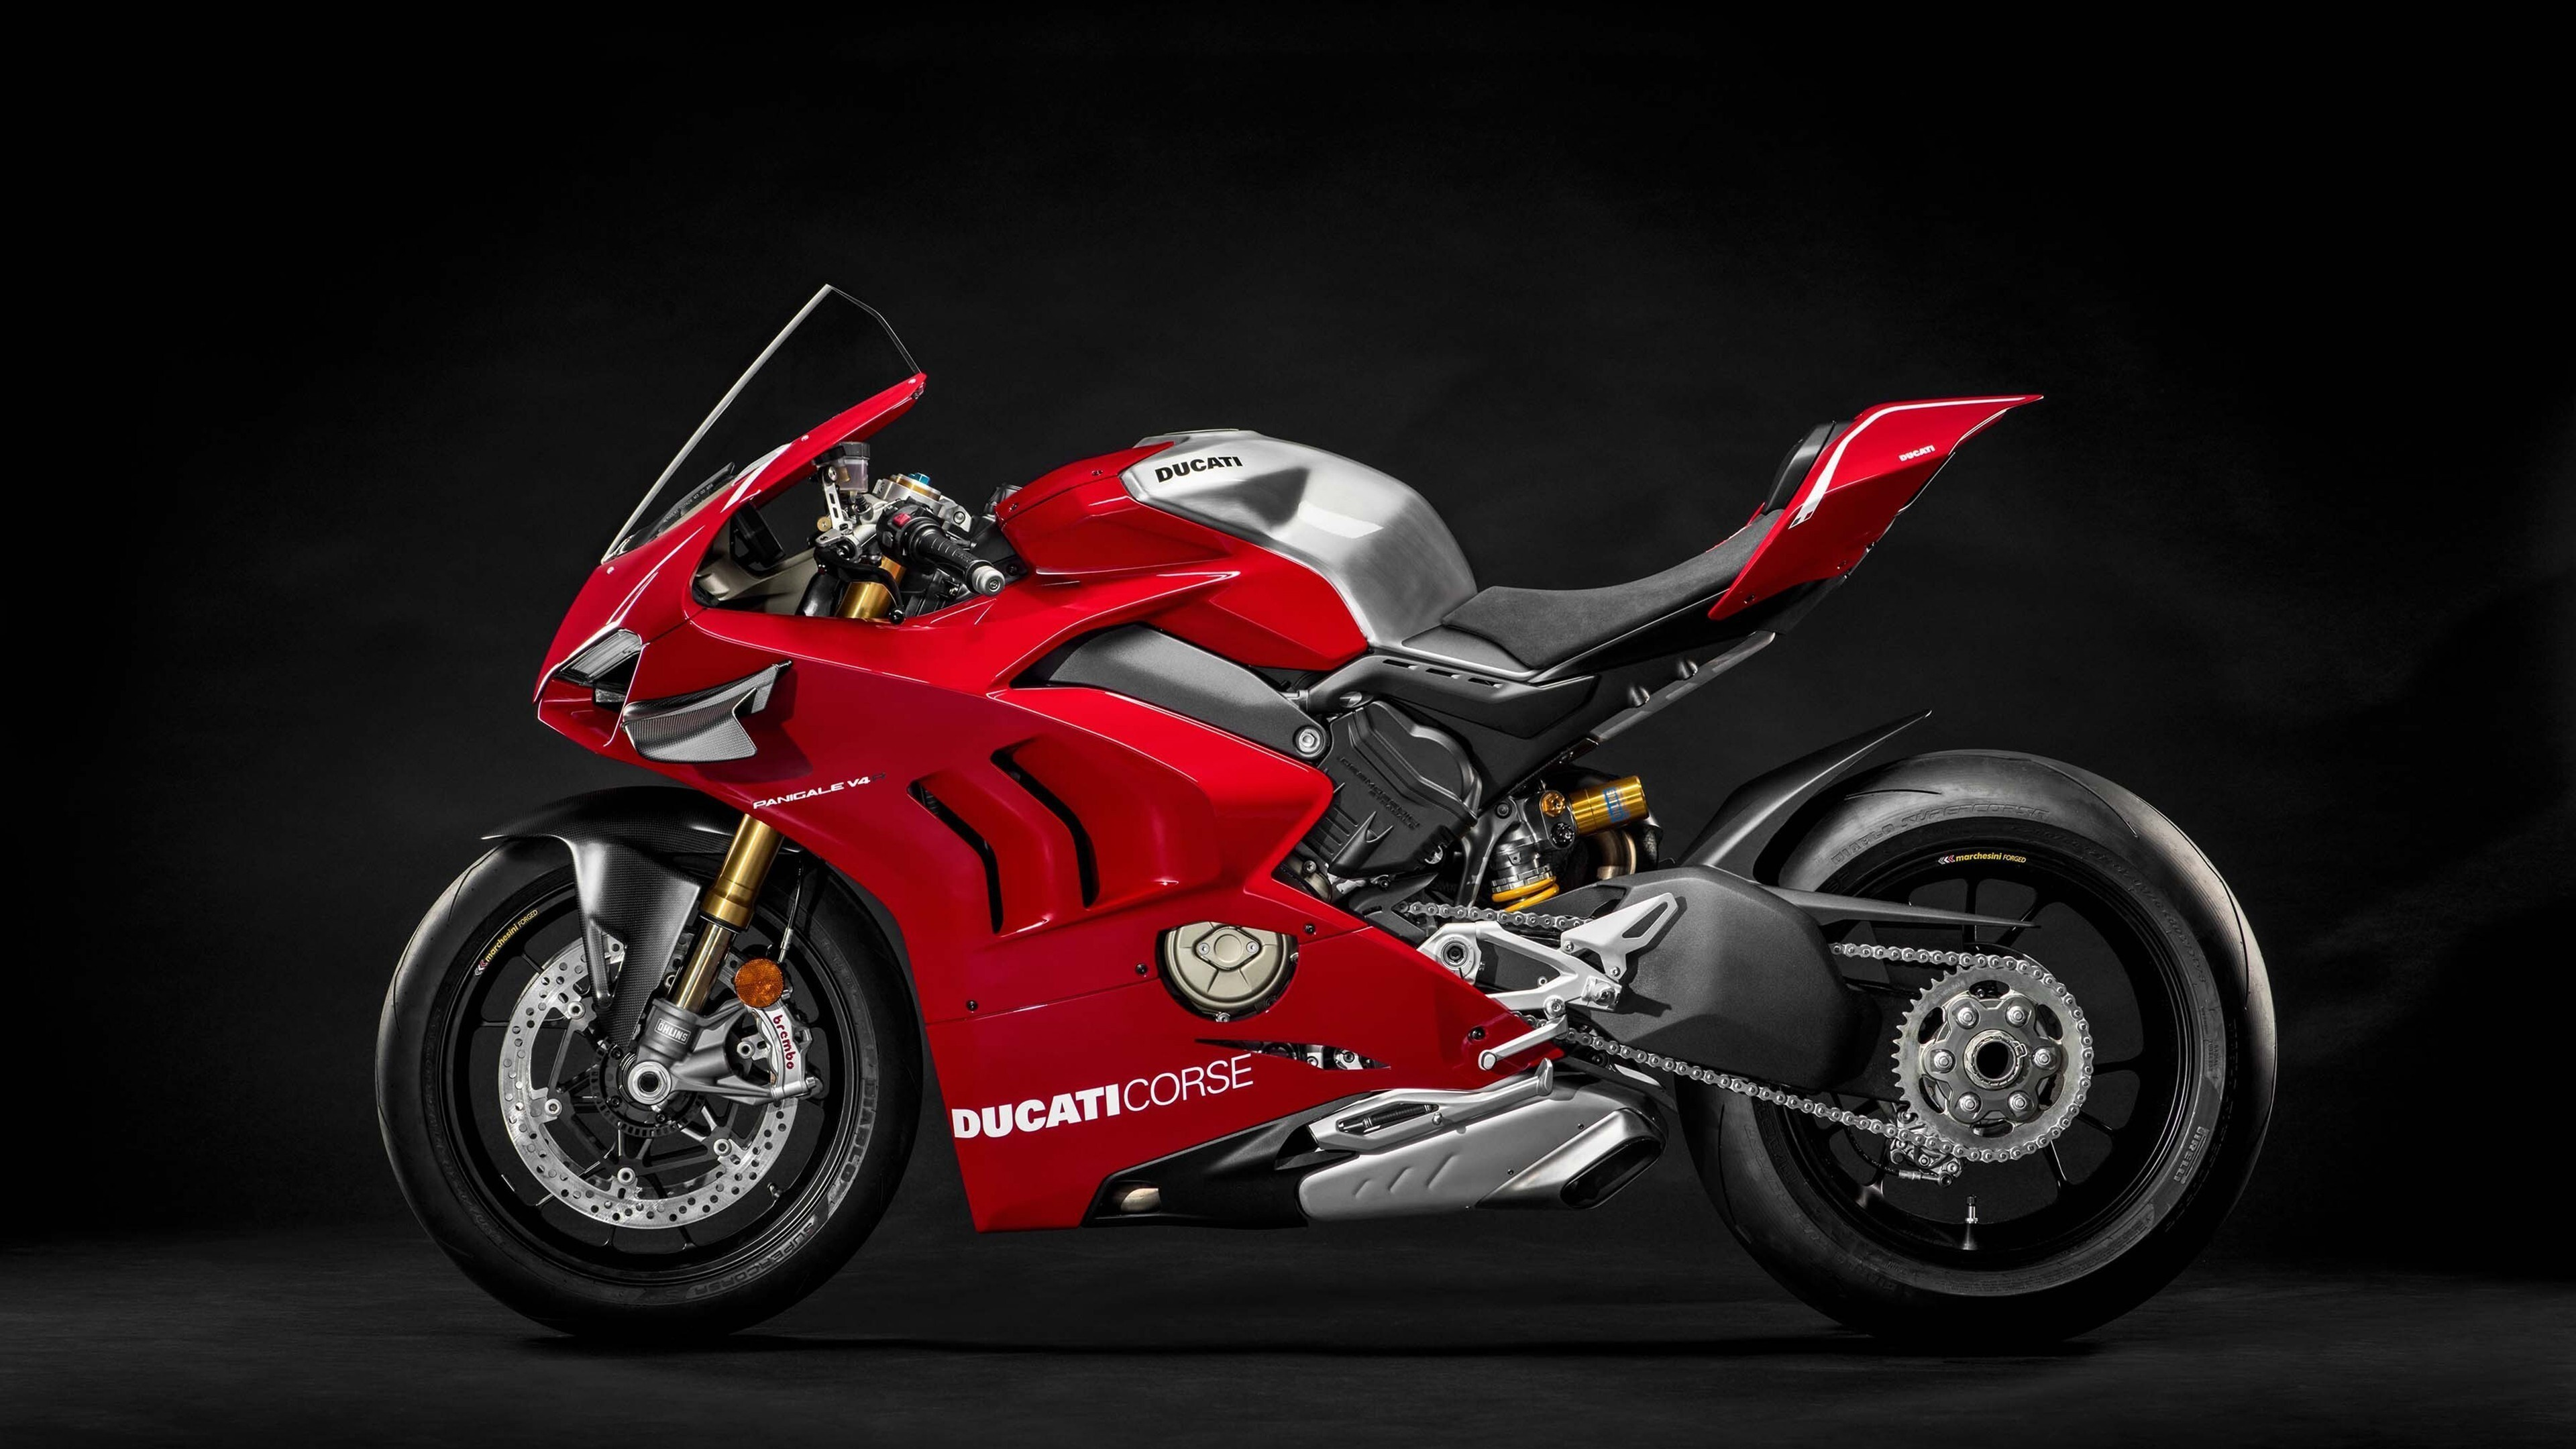 2019 ducati panigale v4 r motorcycle hd wallpapers. Black Bedroom Furniture Sets. Home Design Ideas